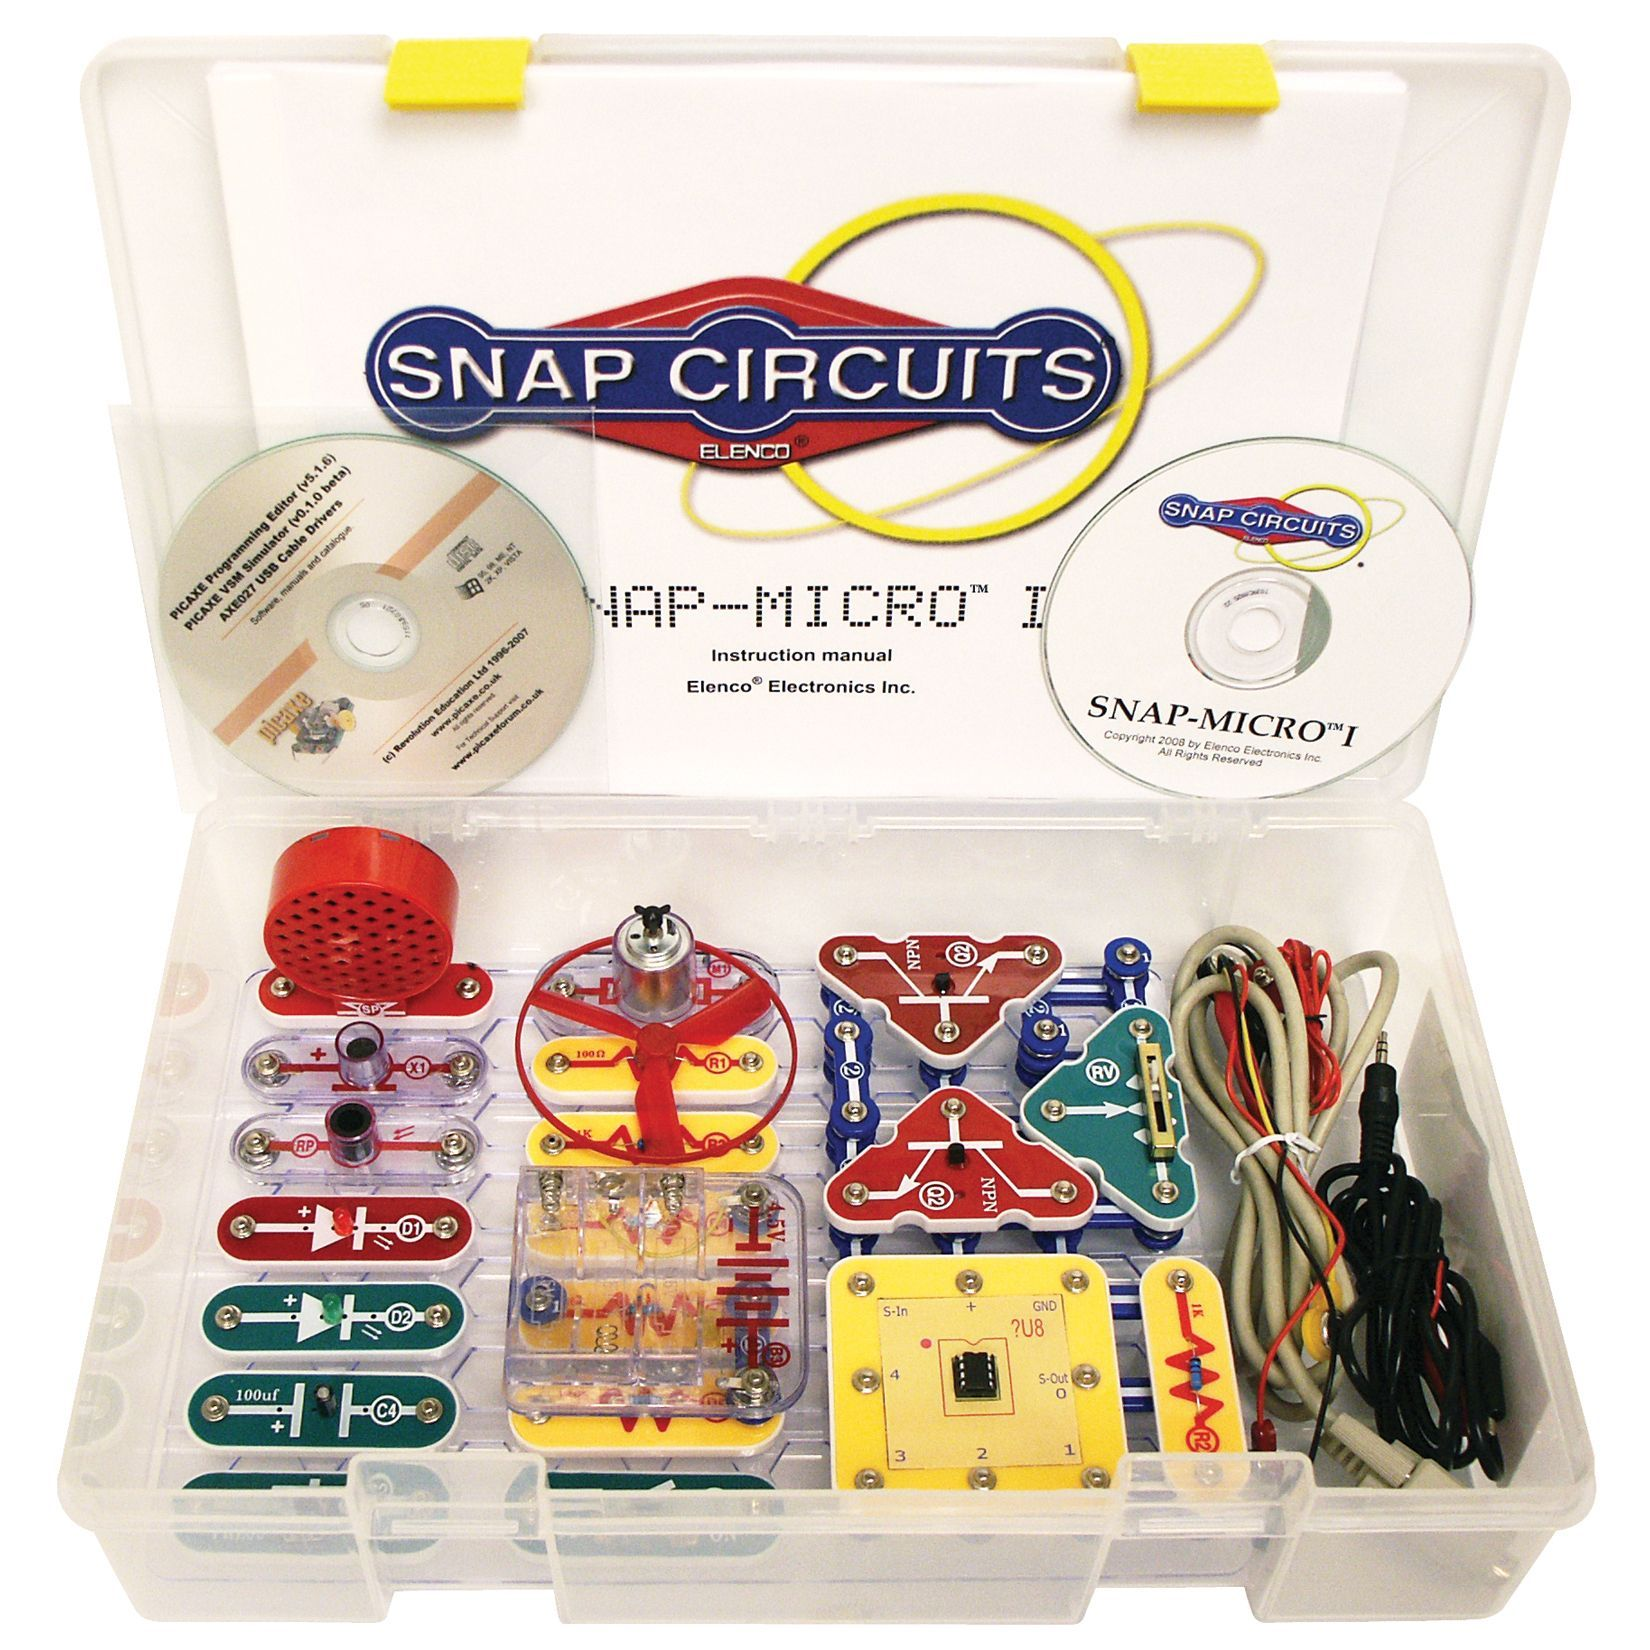 Green Toys Elenco Snap Circuits Micro I Standard Electronics Kit Electronic Circuit Kits Buy Online Overstockcom Shopping Bedding Furniture Jewelry Clothing More